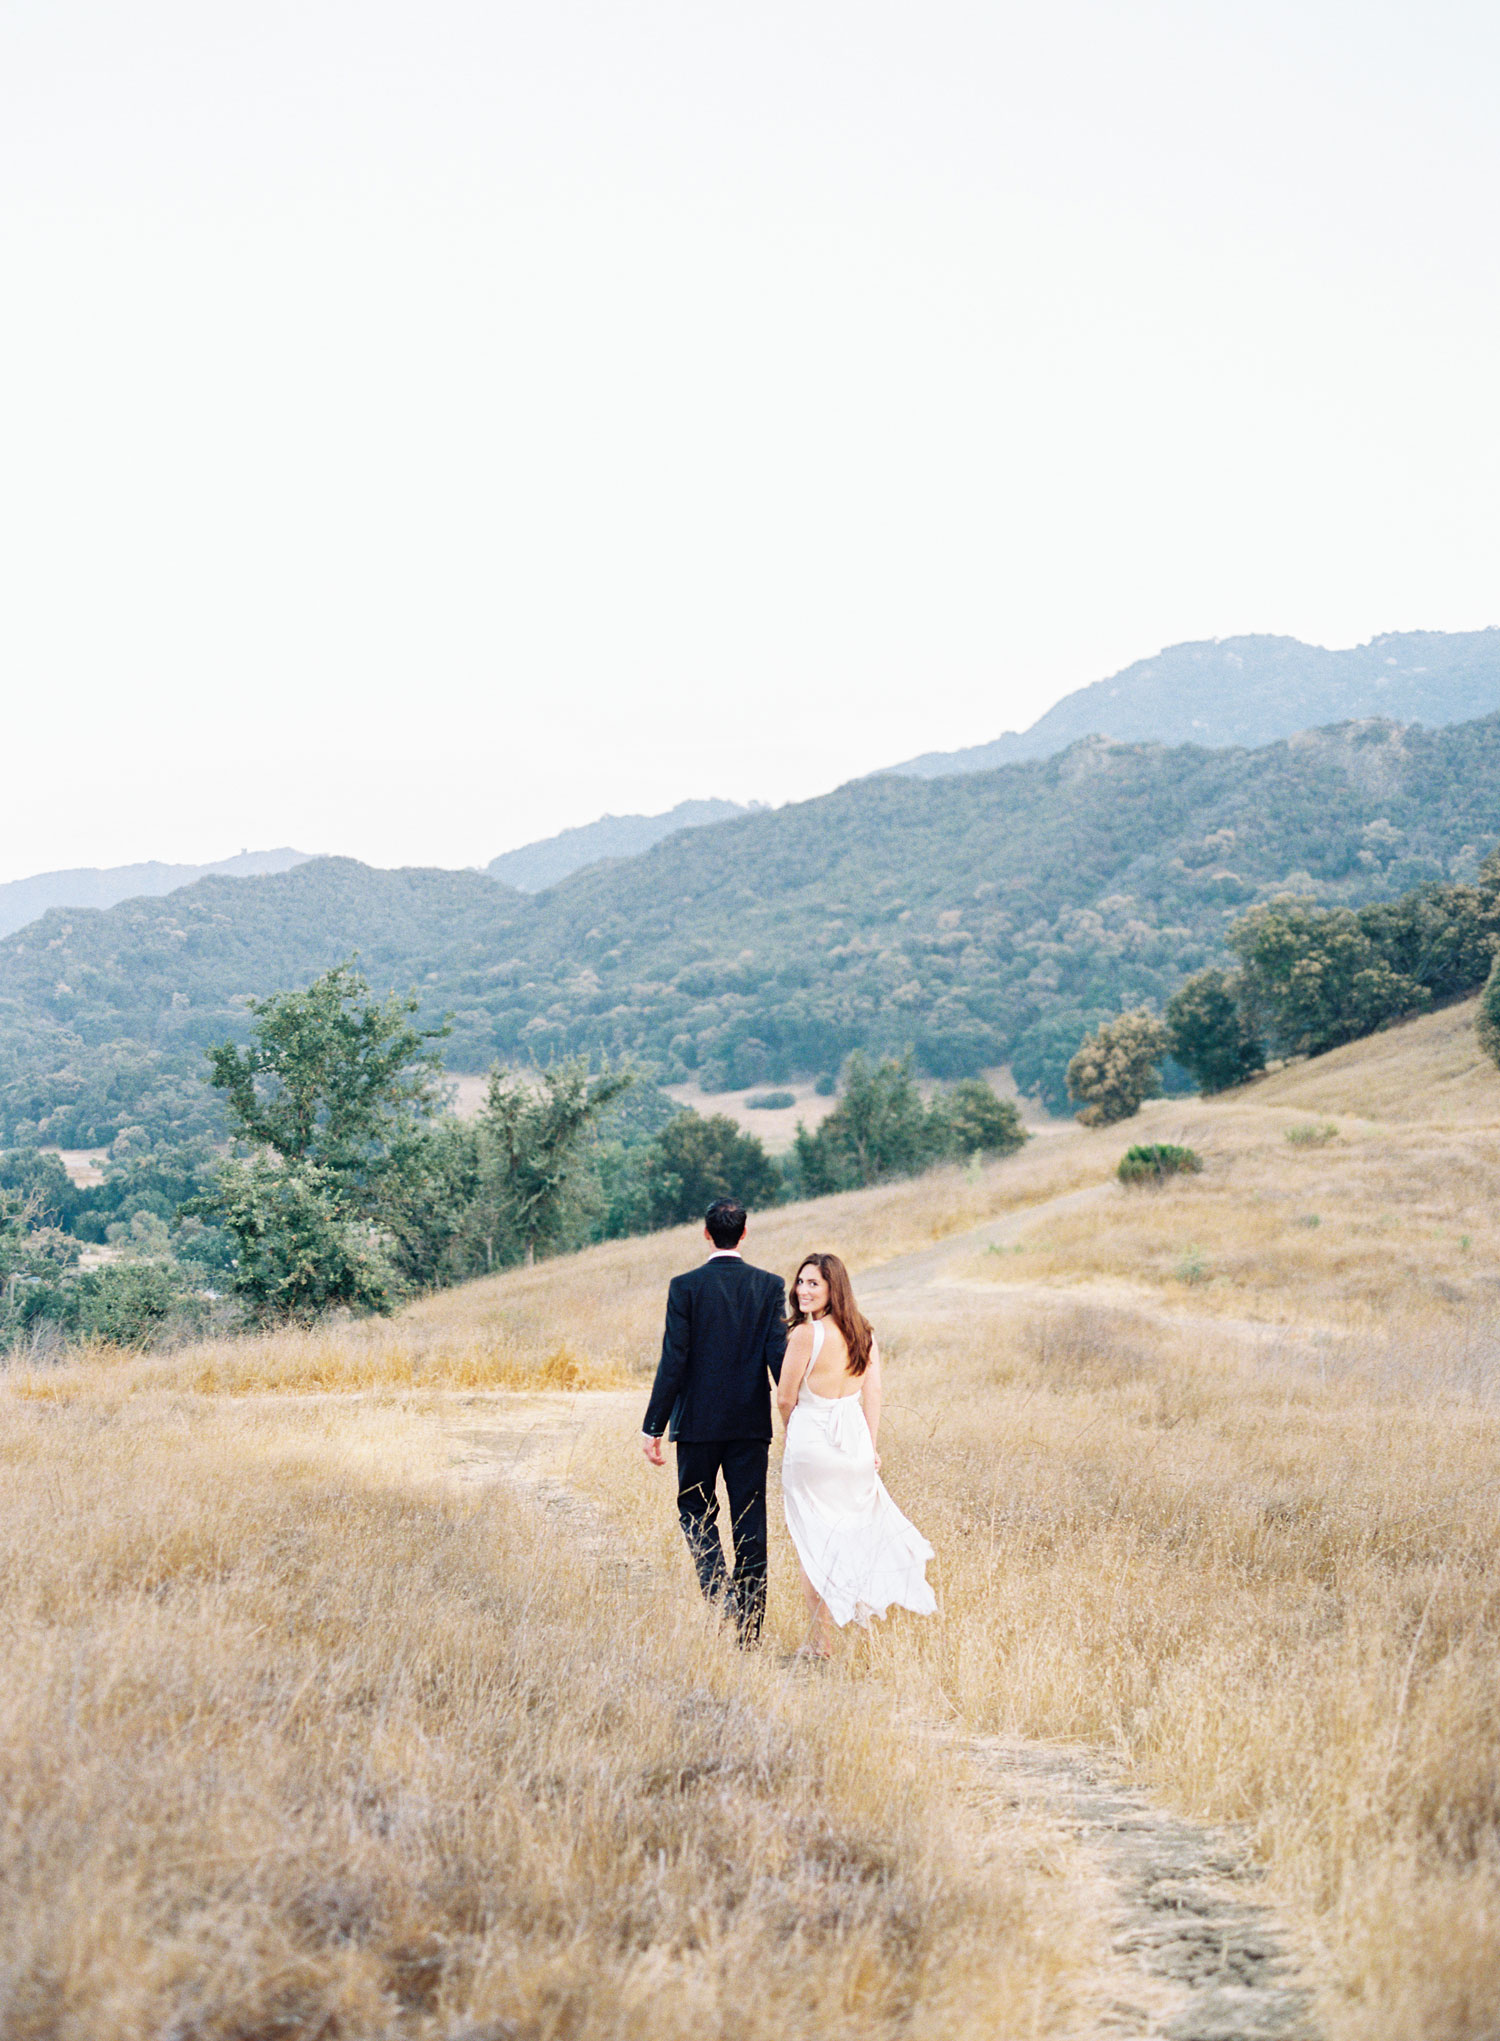 Engagement shoot photo ideas malibu classic car vintage mustang convertible walking in field